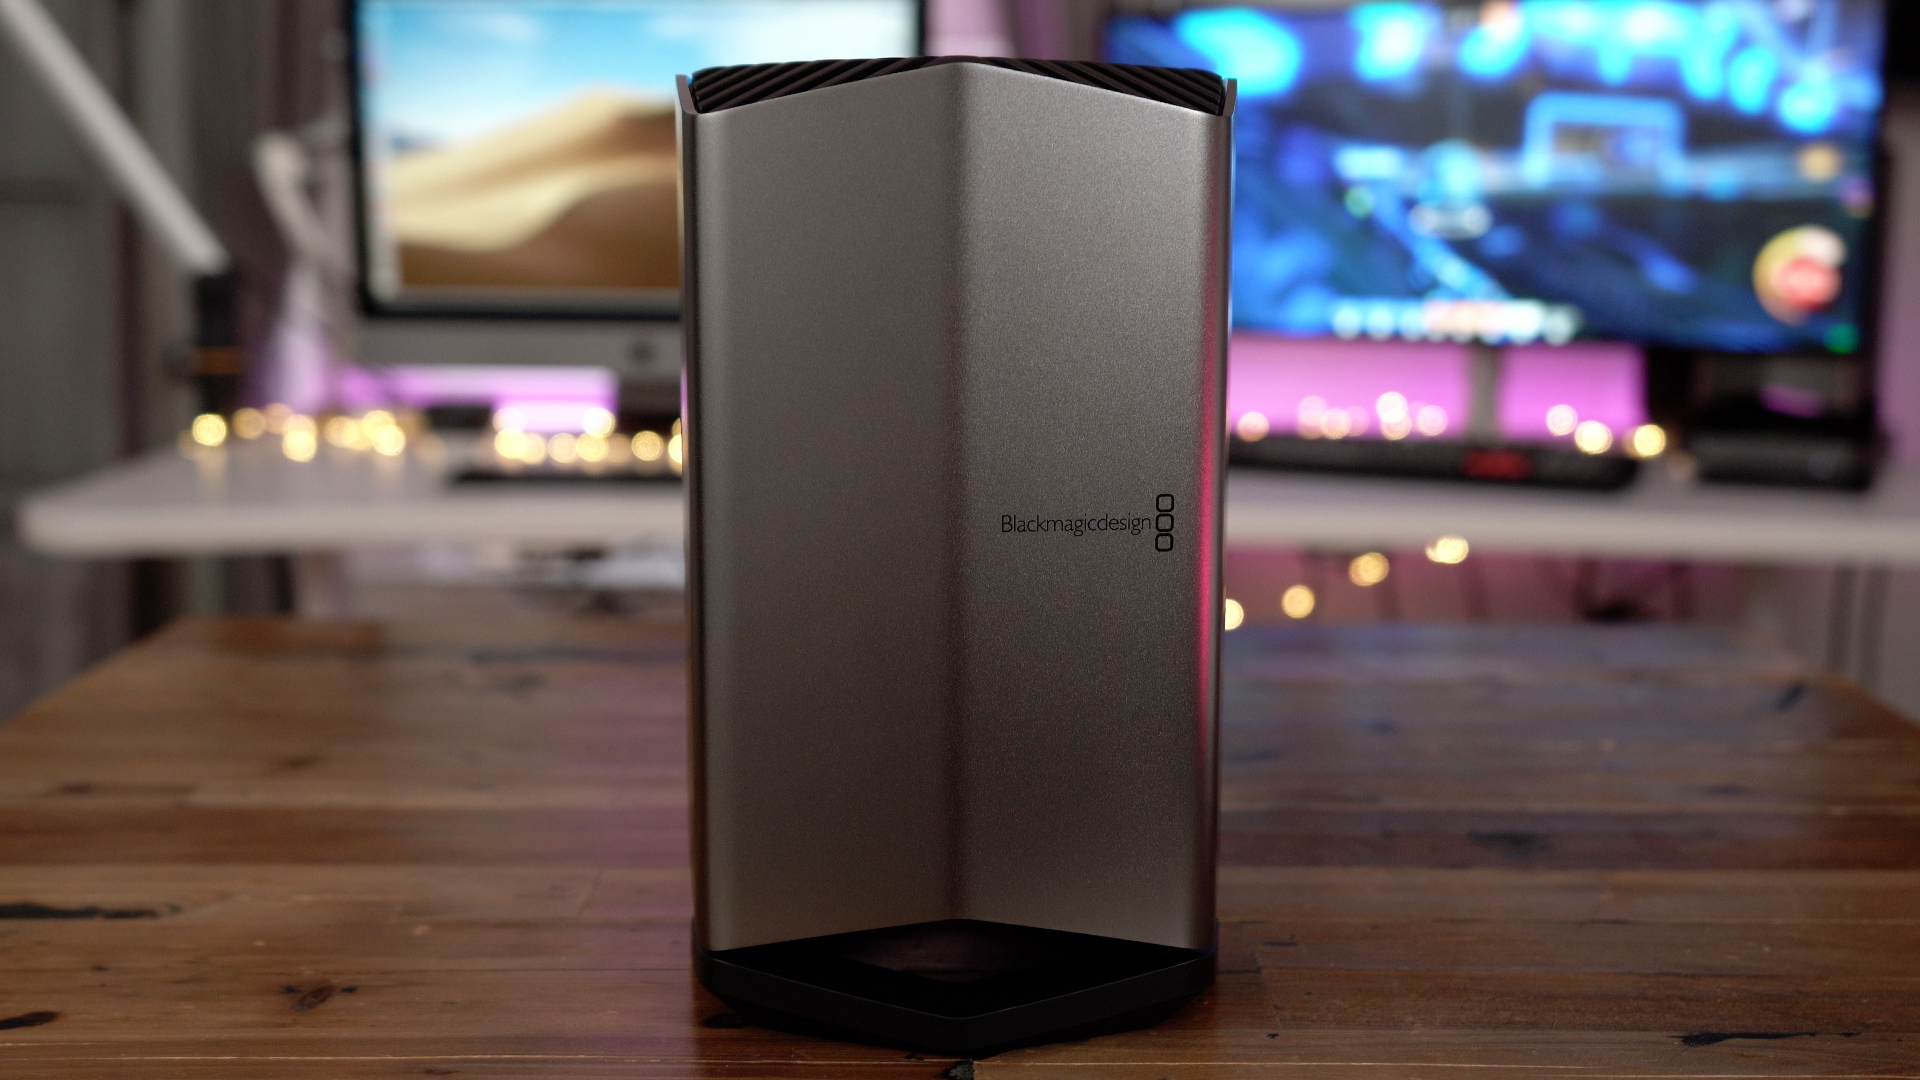 Review: Blackmagic eGPU Pro – more powerful and capable, but who is it for? [Video]